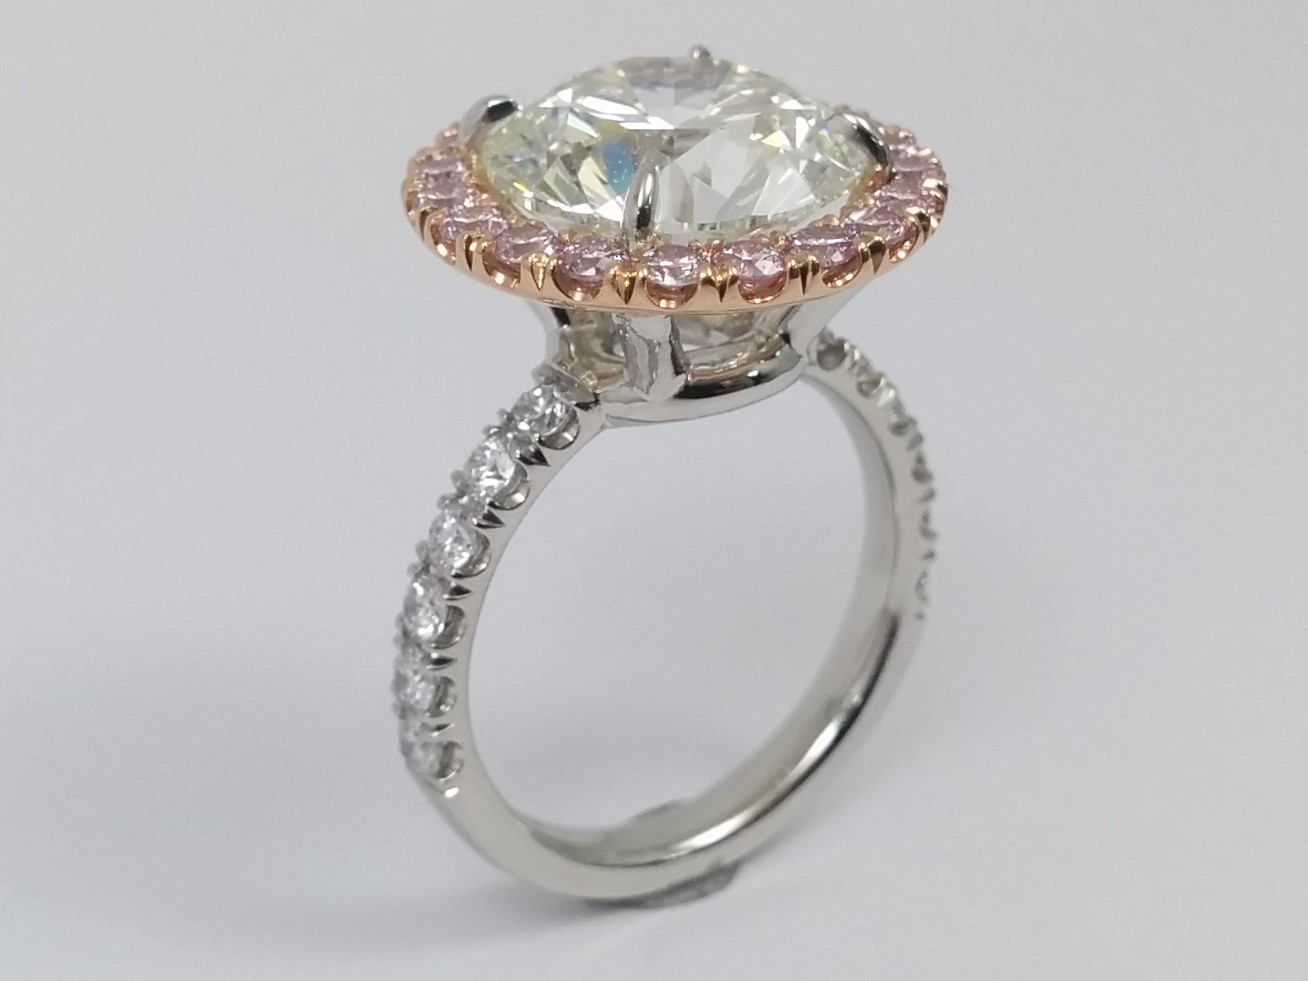 wedding diamond jewellery of pink xvdushg fake promise and ideas sapphire rings ring engagement